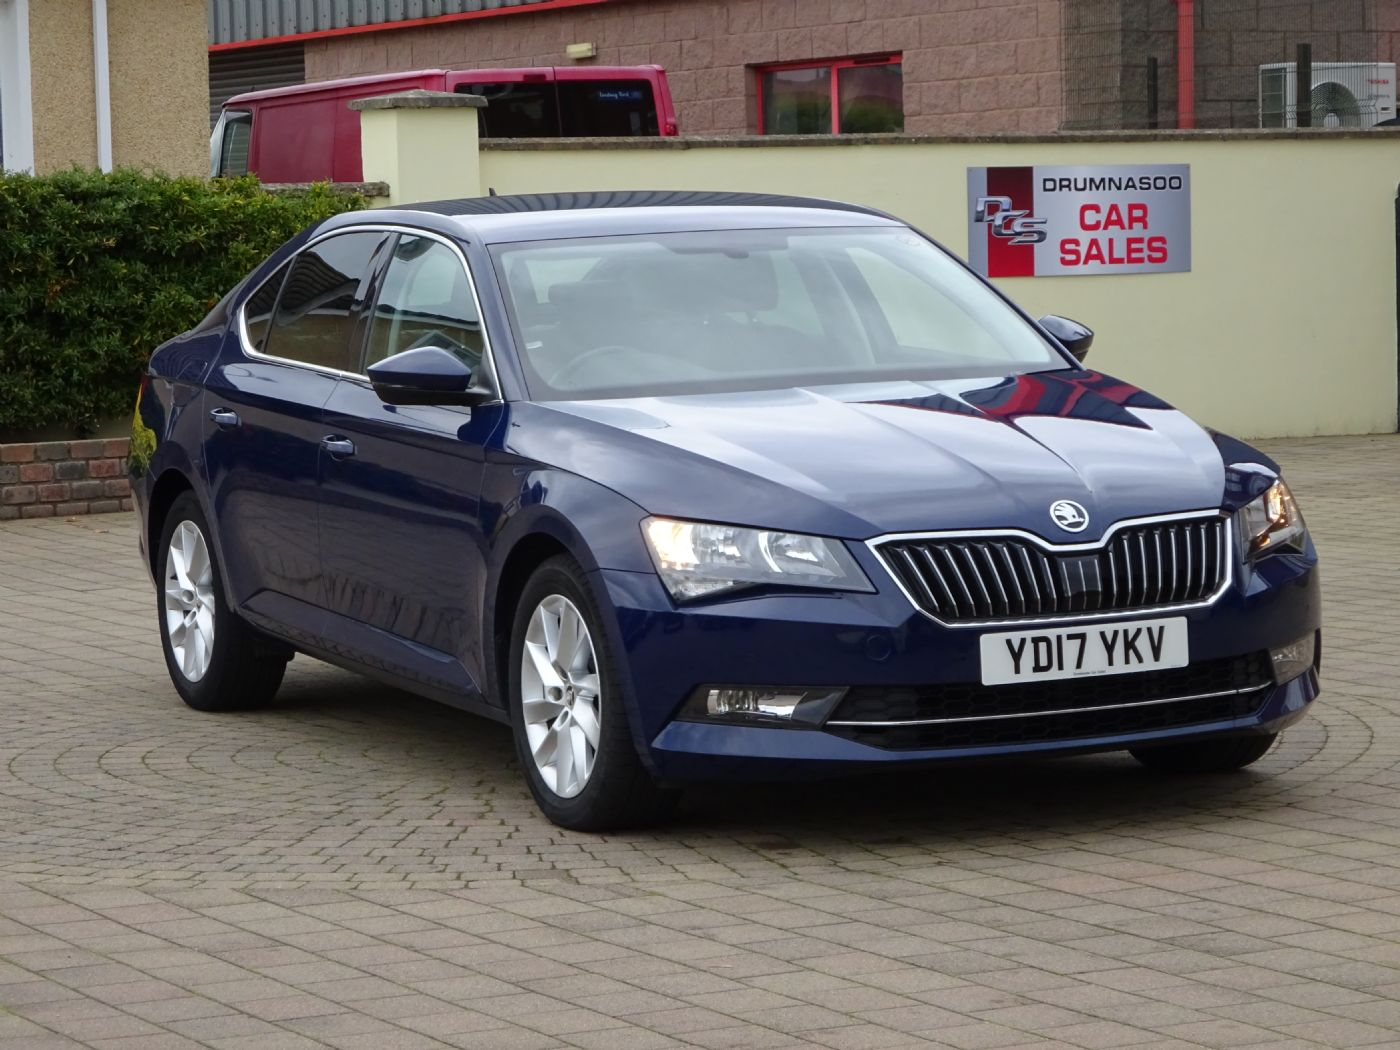 Skoda Superb SE Business 1.6 TDI, Leather seats, Sat nav